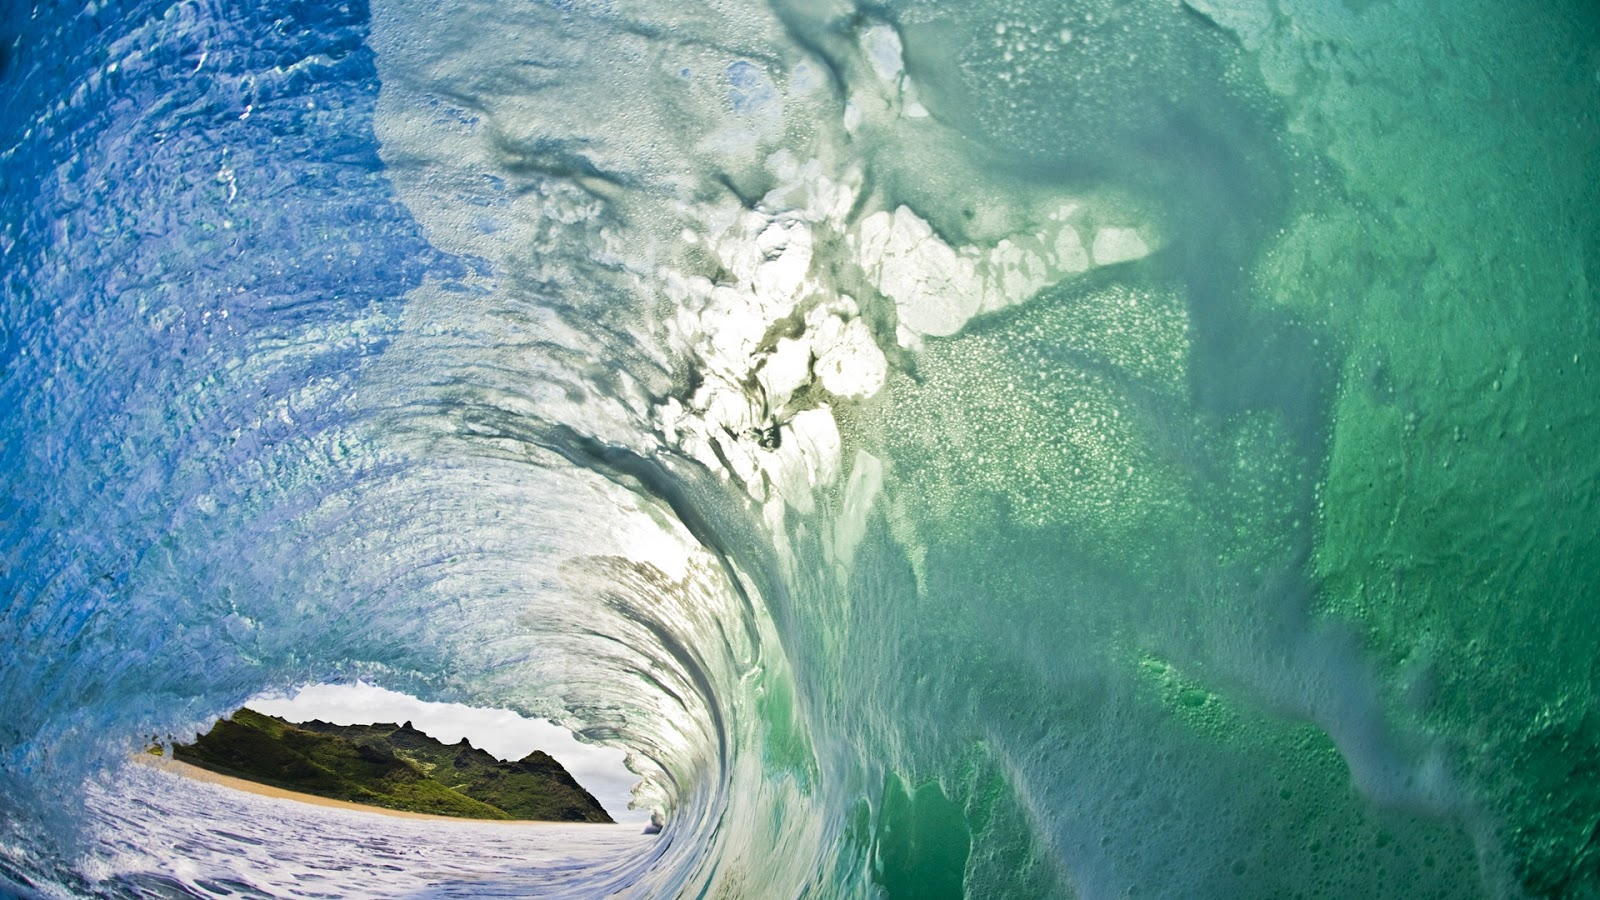 Download Ocean Waves Wallpapers Most beautiful places in the 1600x900